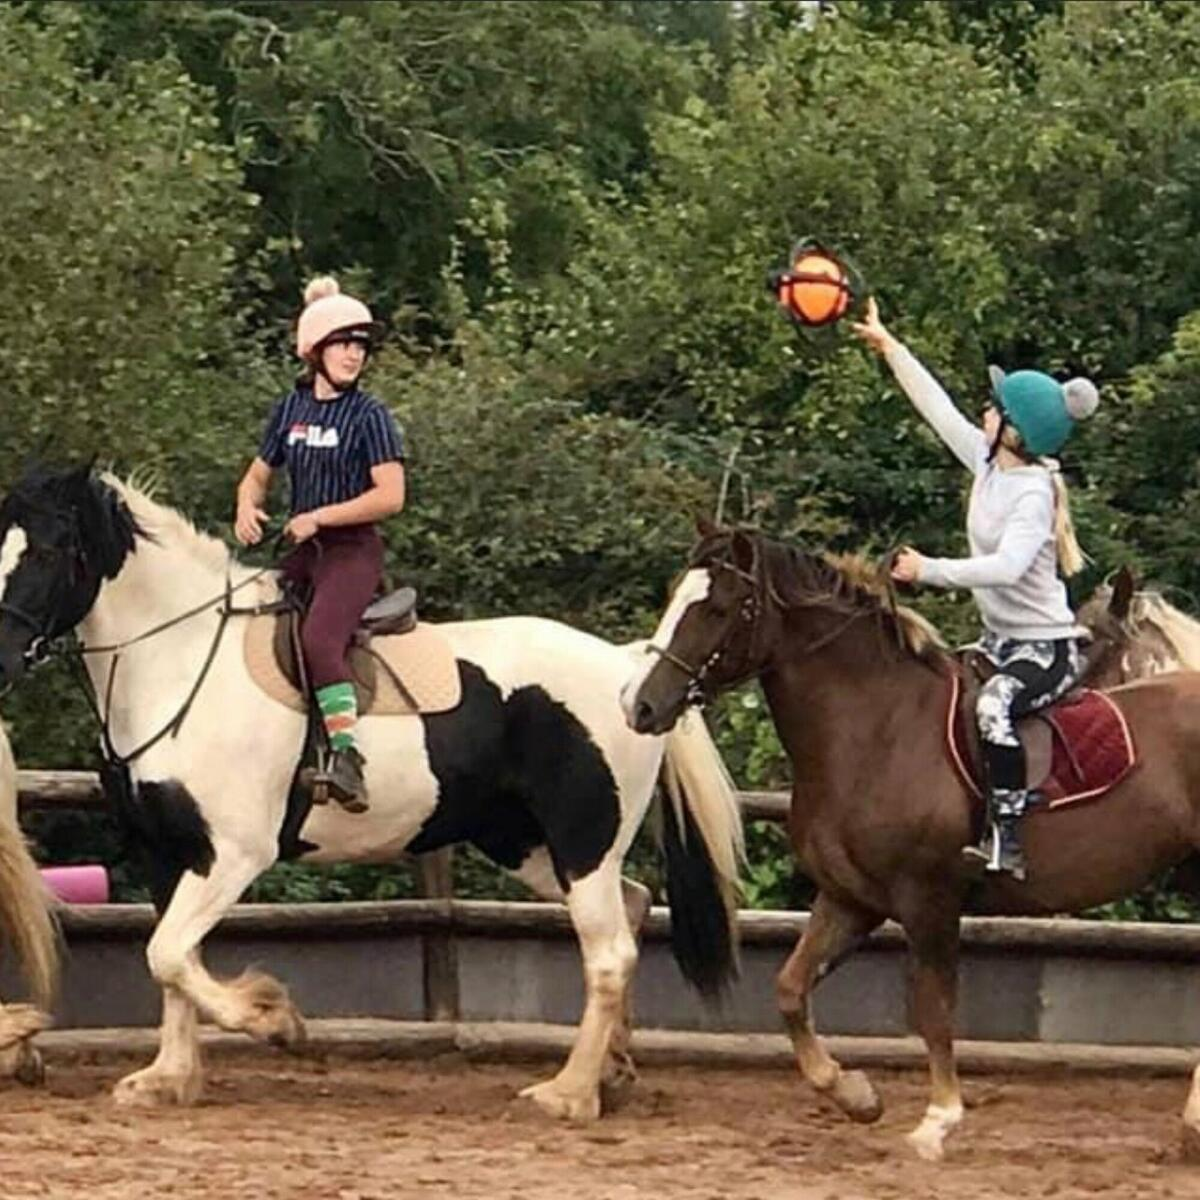 Fun and games horse ball